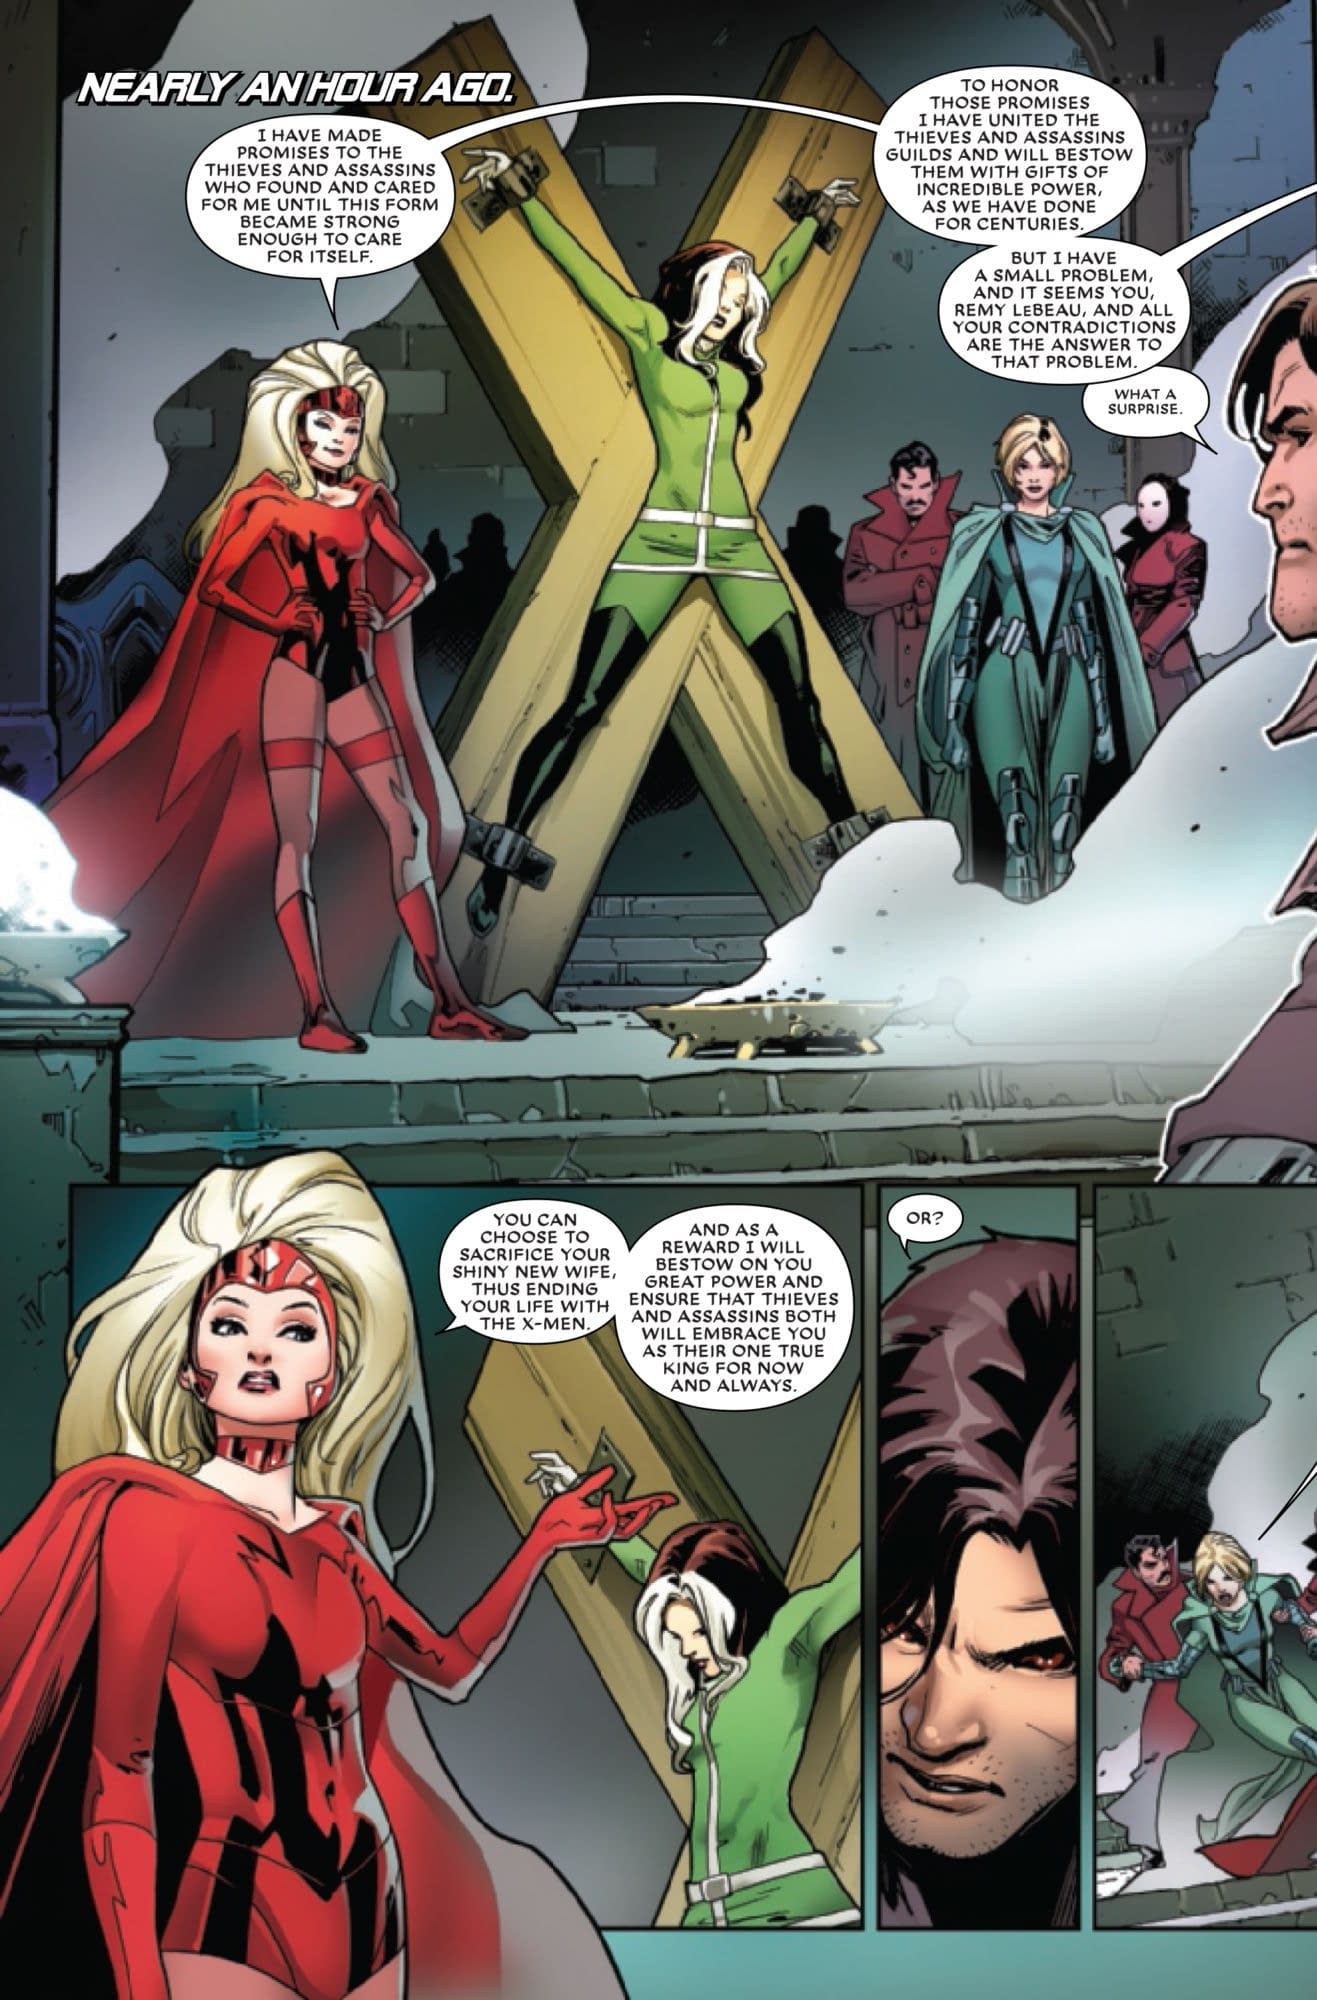 Gambit's Choice in Mr. and Mrs. X #12 (Finale Preview)